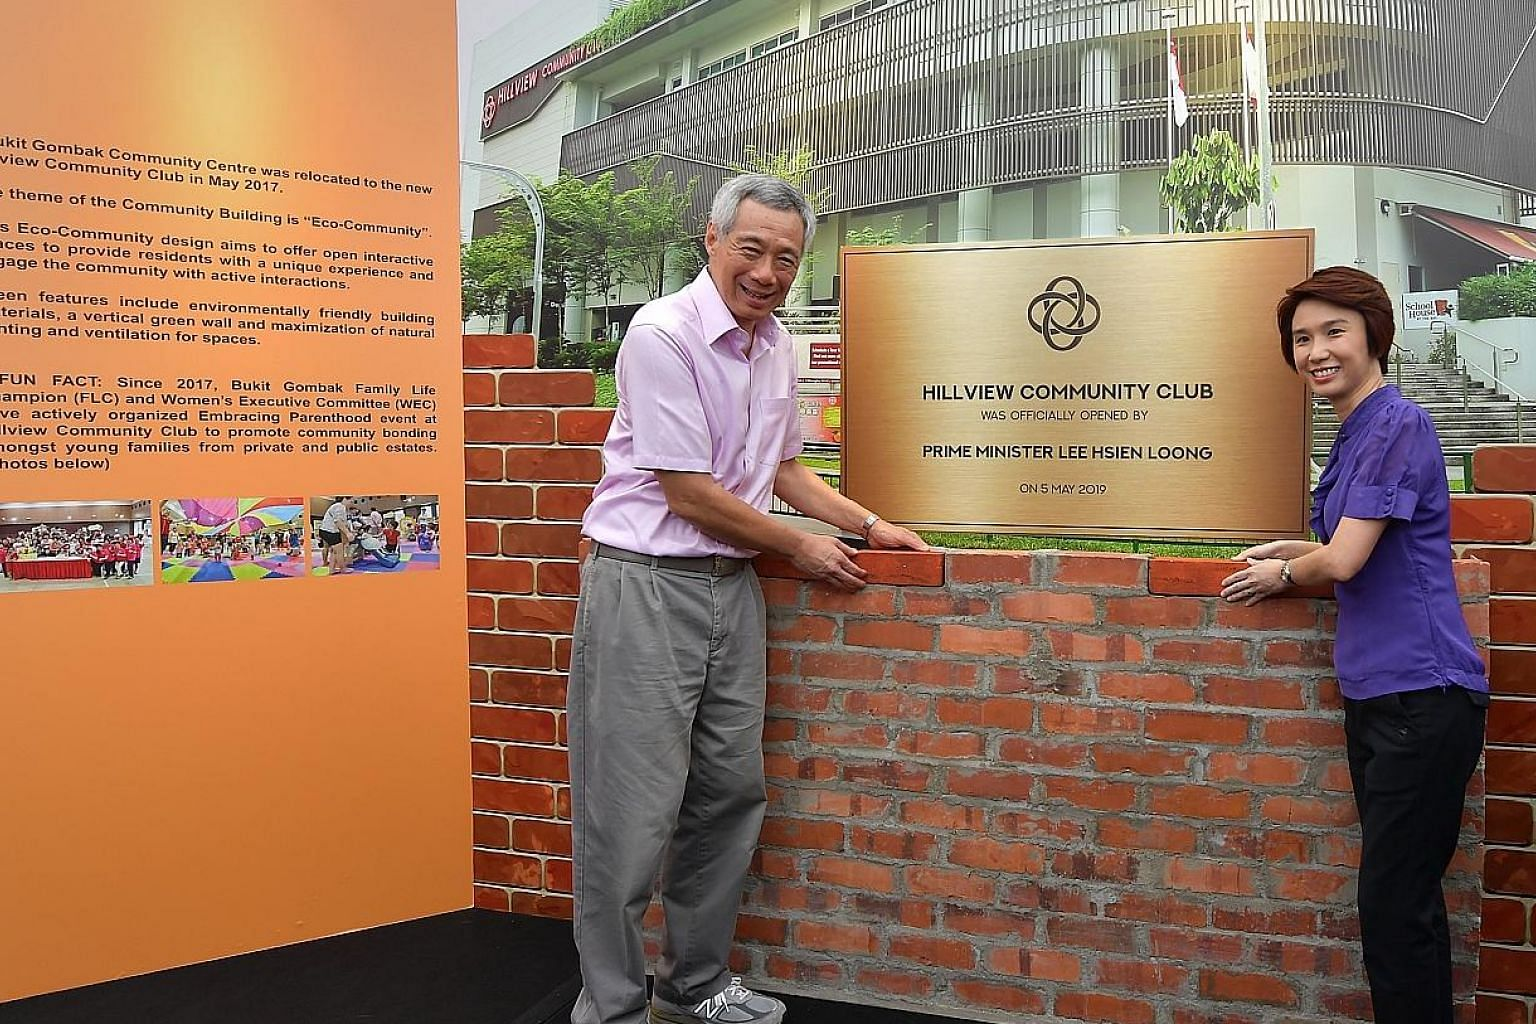 Prime Minister Lee Hsien Loong placing a symbolic brick at the new Hillview Community Club yesterday, in memory of the brick laid by former prime minister Lee Kuan Yew at the same site 56 years ago. PM Lee was with his father on that occasion. Beside